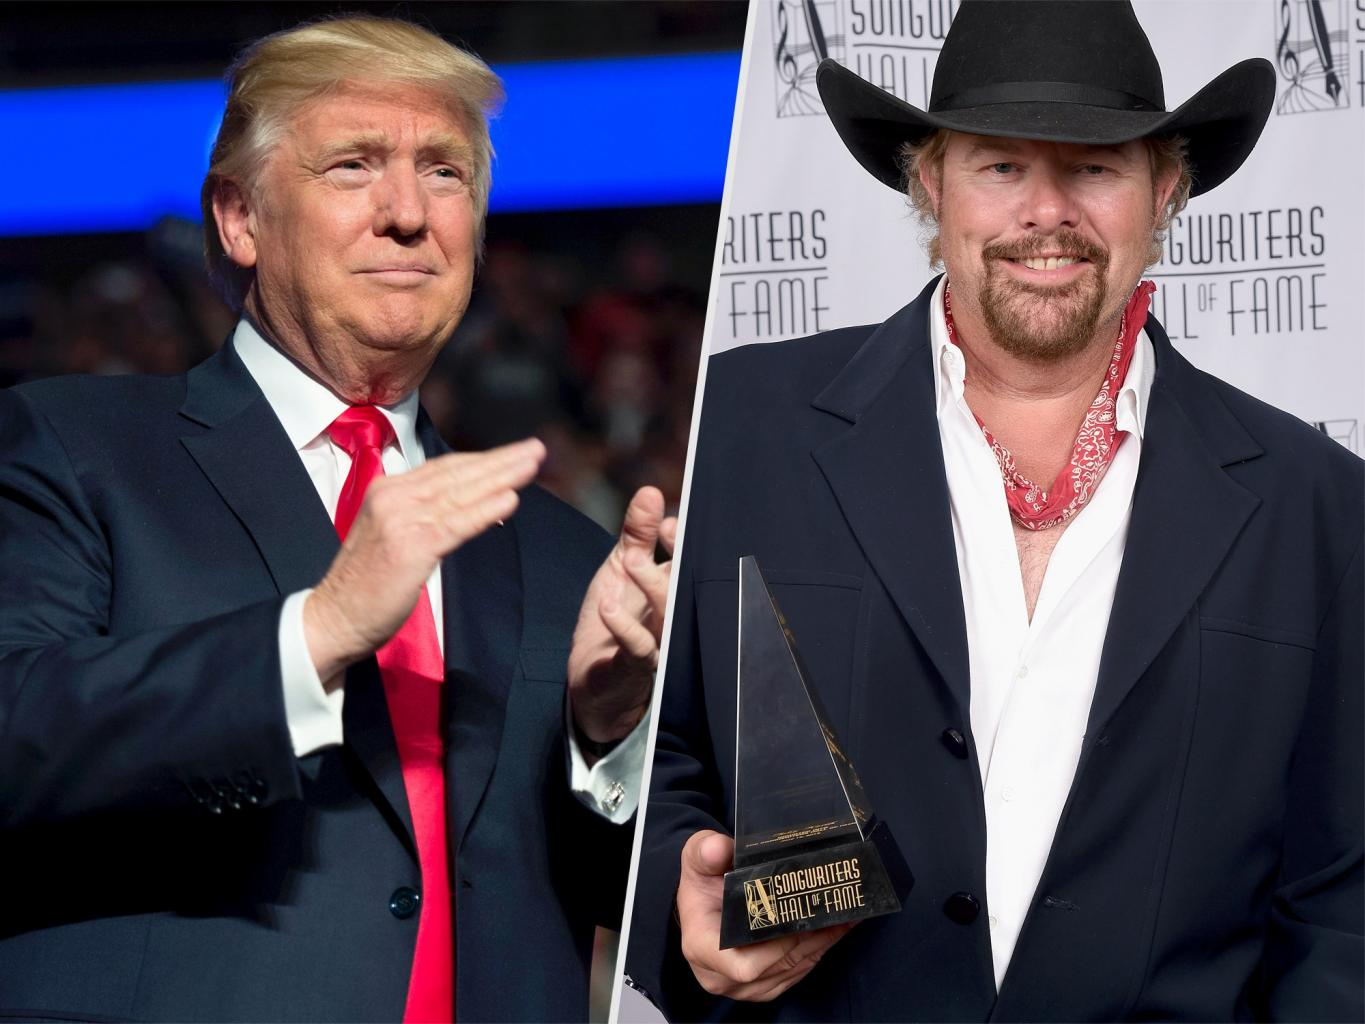 'I Won't Apologize': Toby Keith Defends His Decision to Perform at Donald Trump's Inauguration